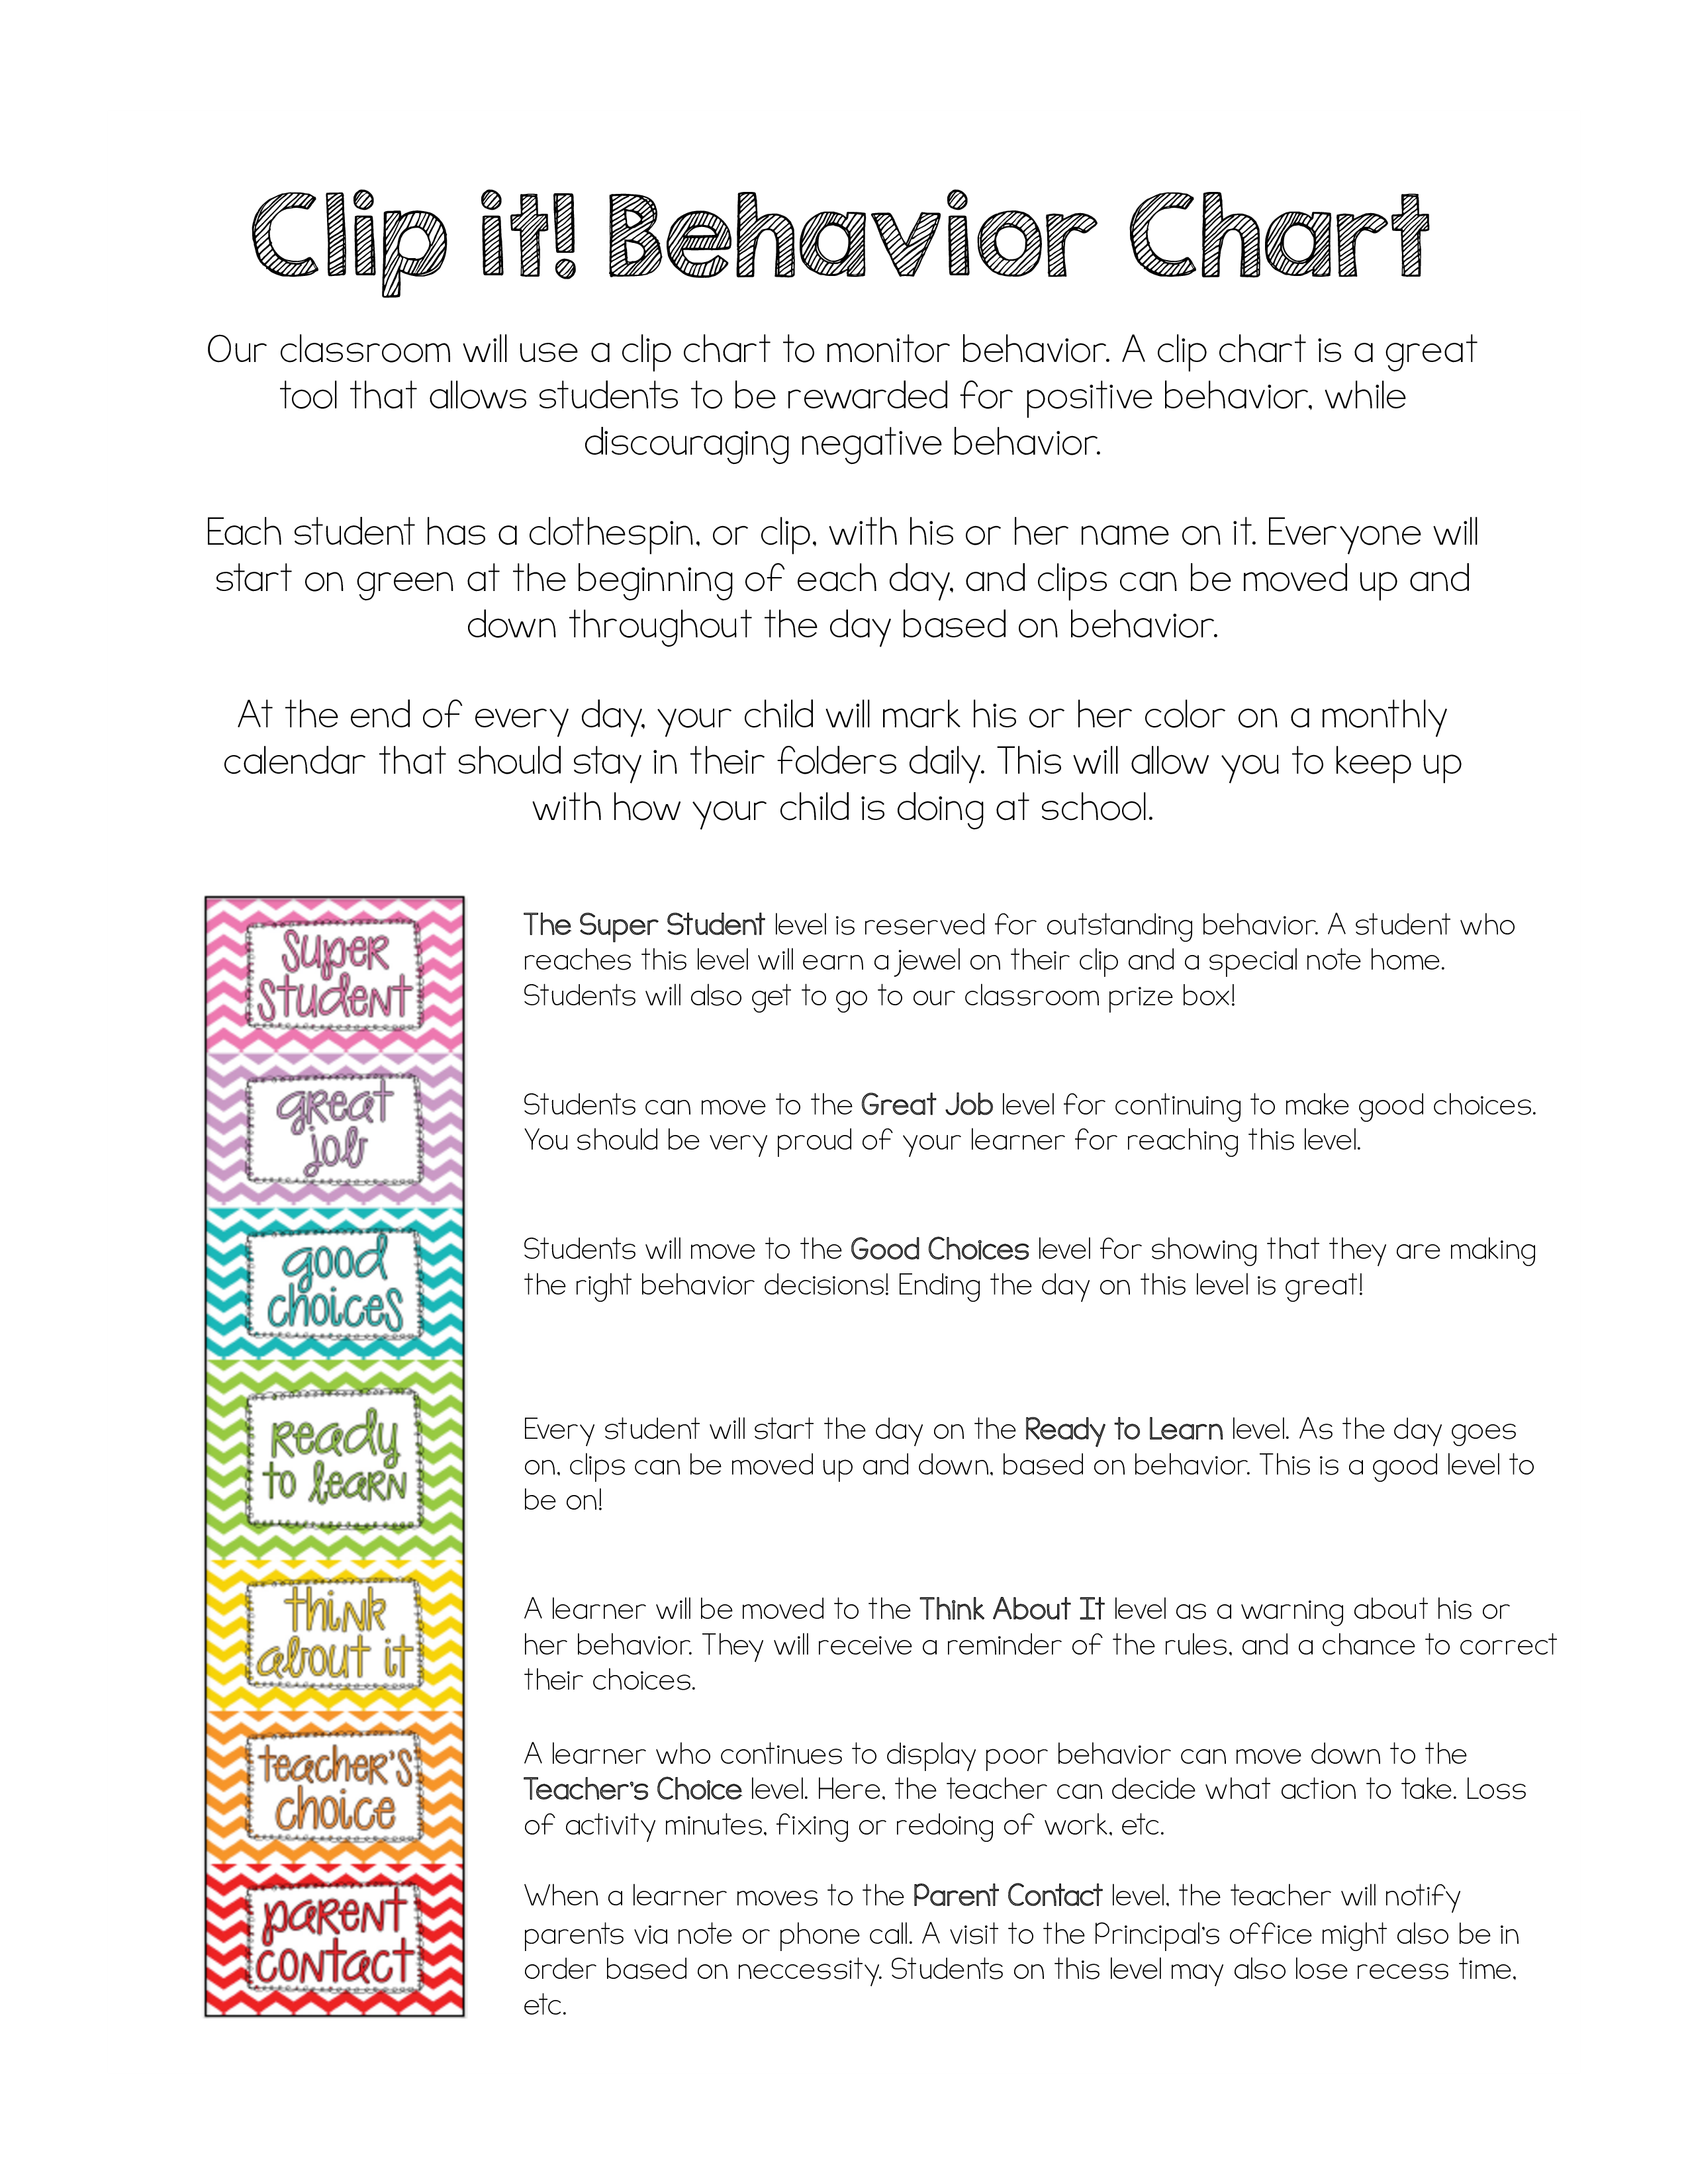 Daily Behavior Chart Main Image Template